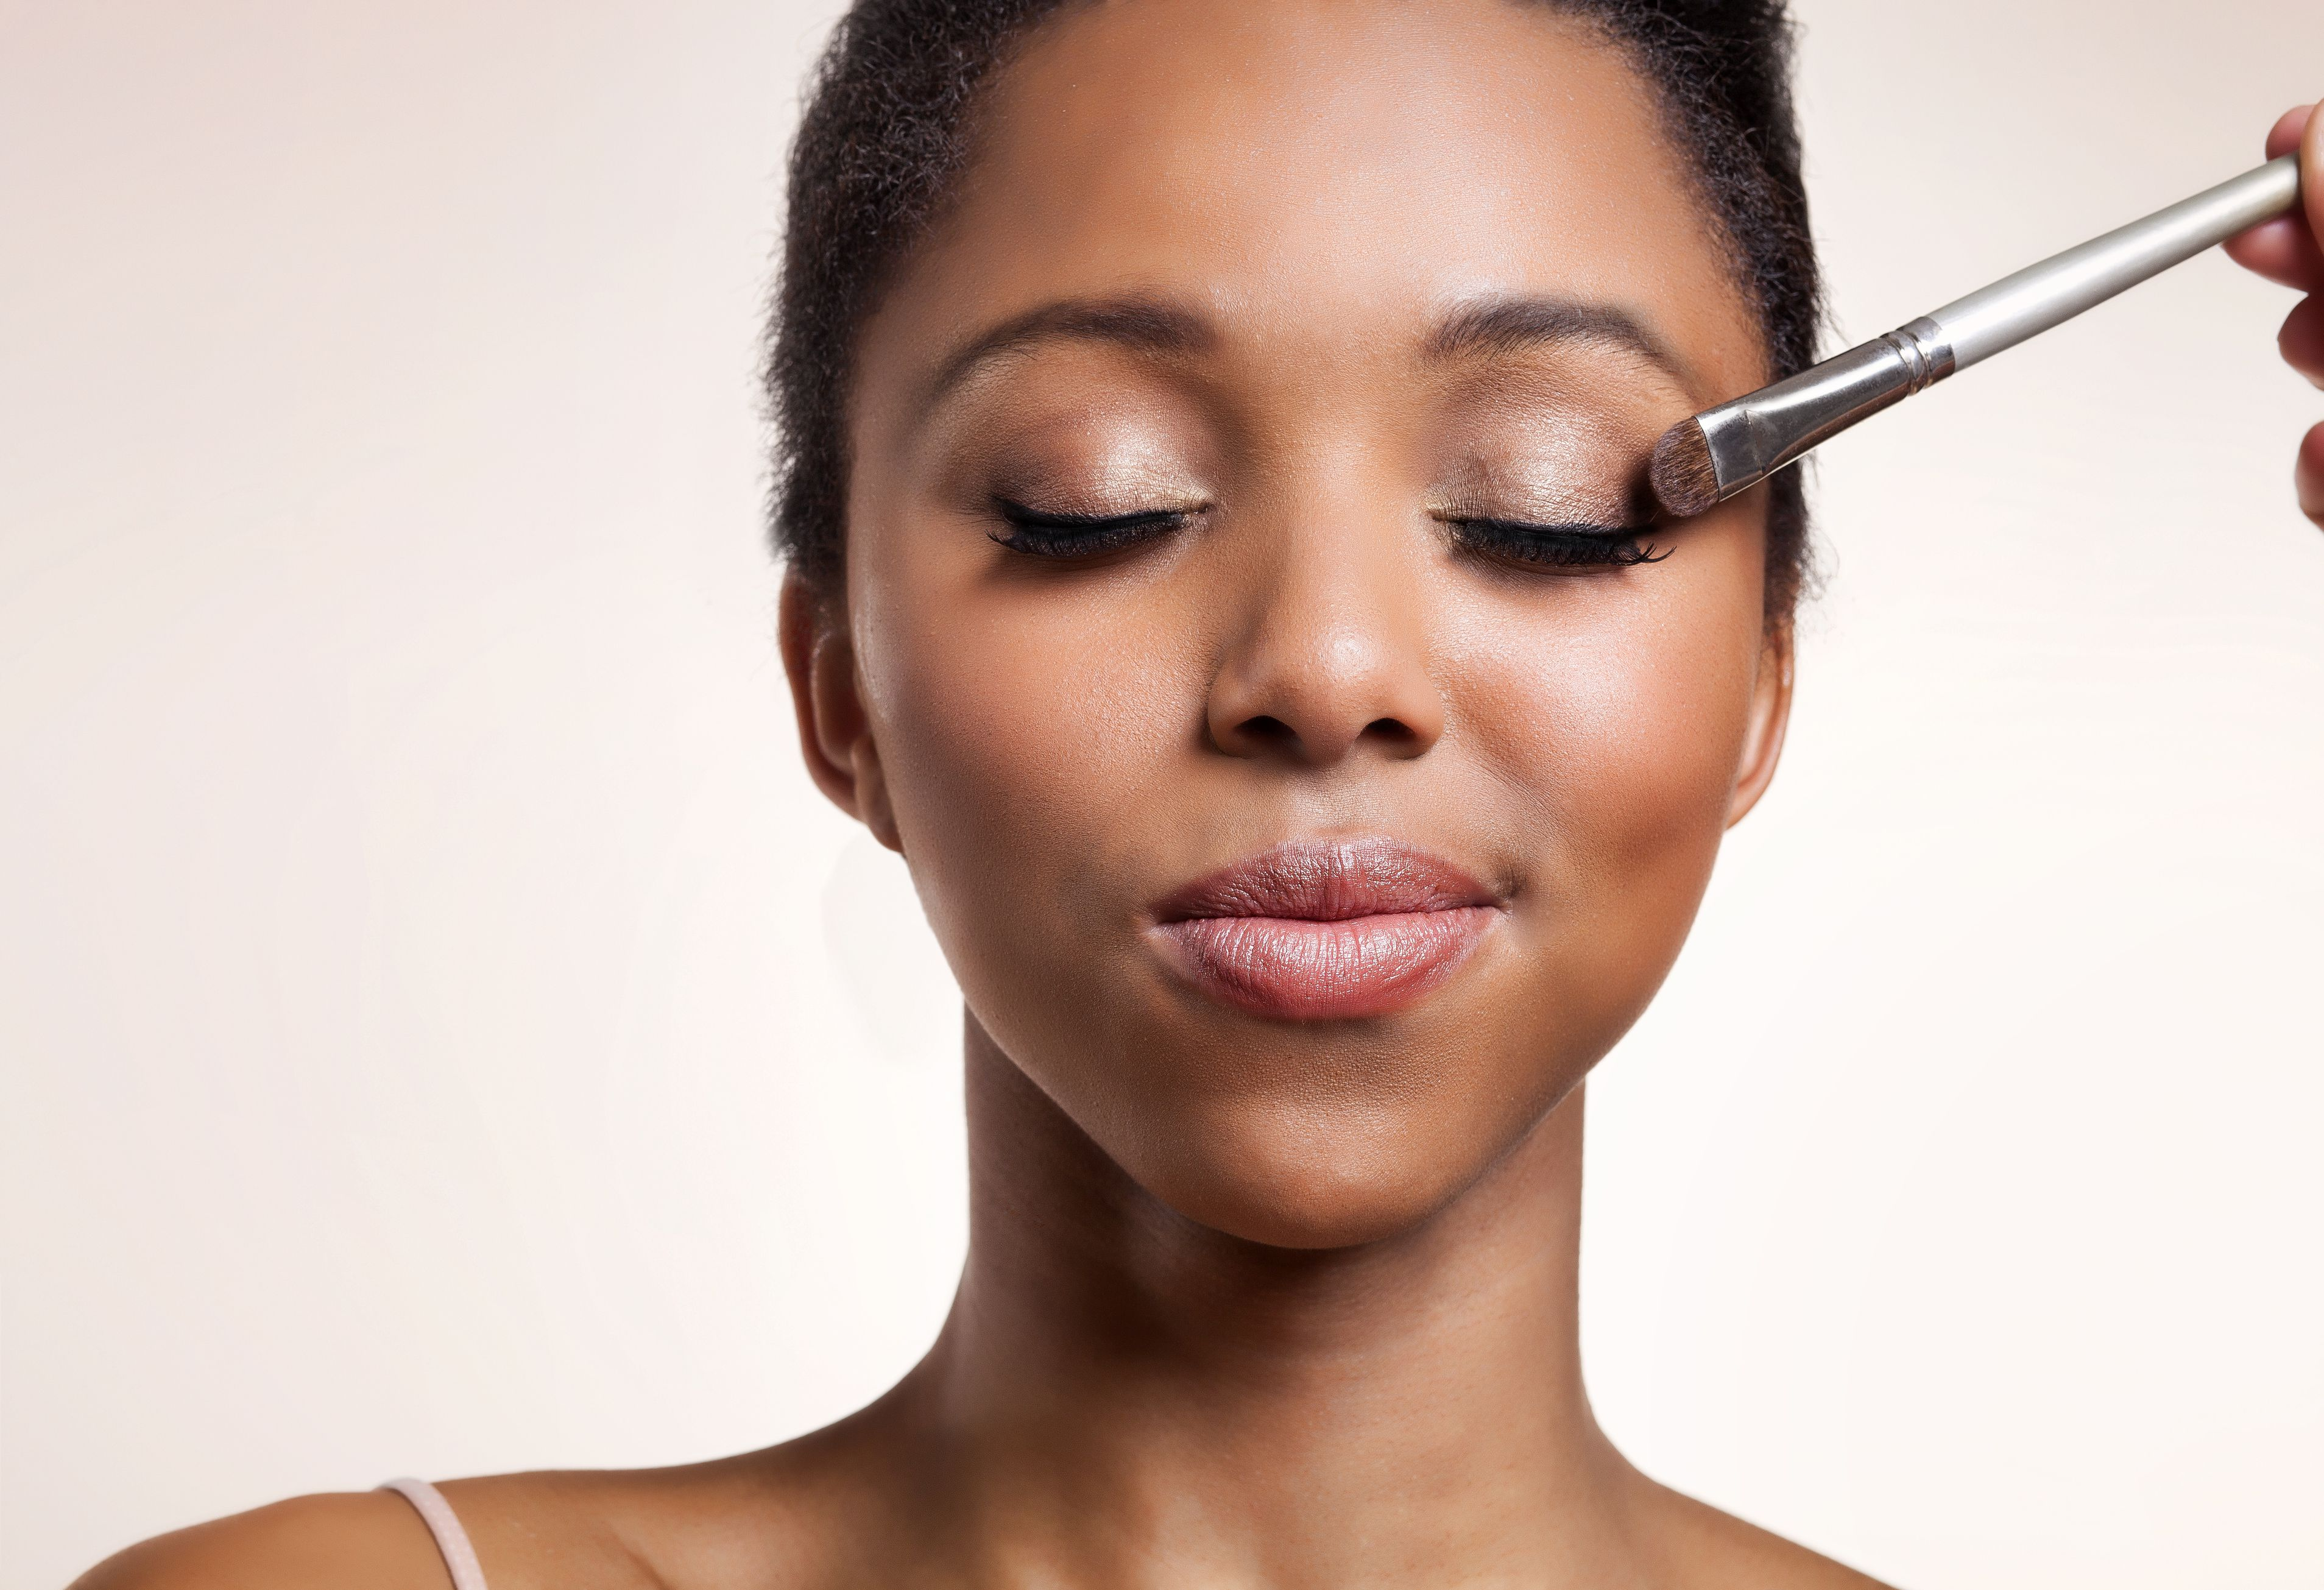 Job Interview Makeup Dos And Donts